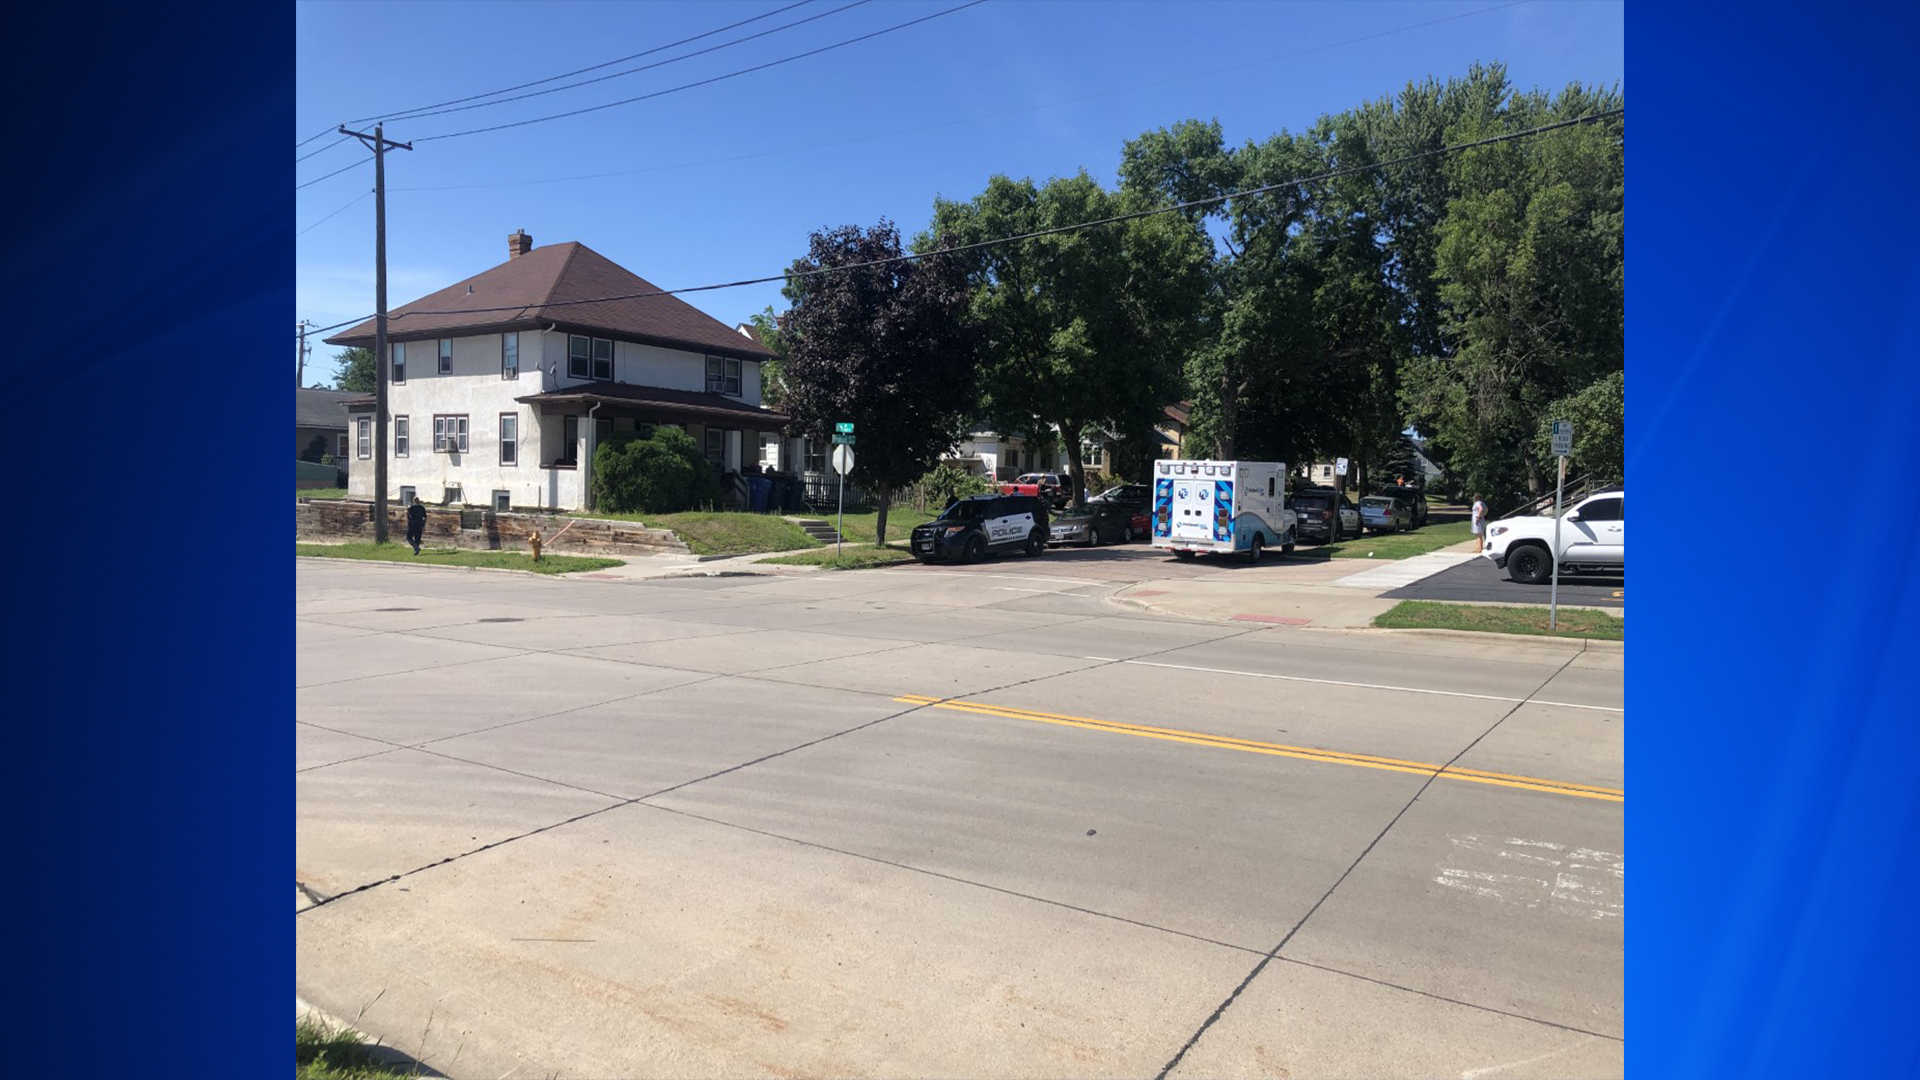 2 men arrested after assault in downtown Sioux Falls ...